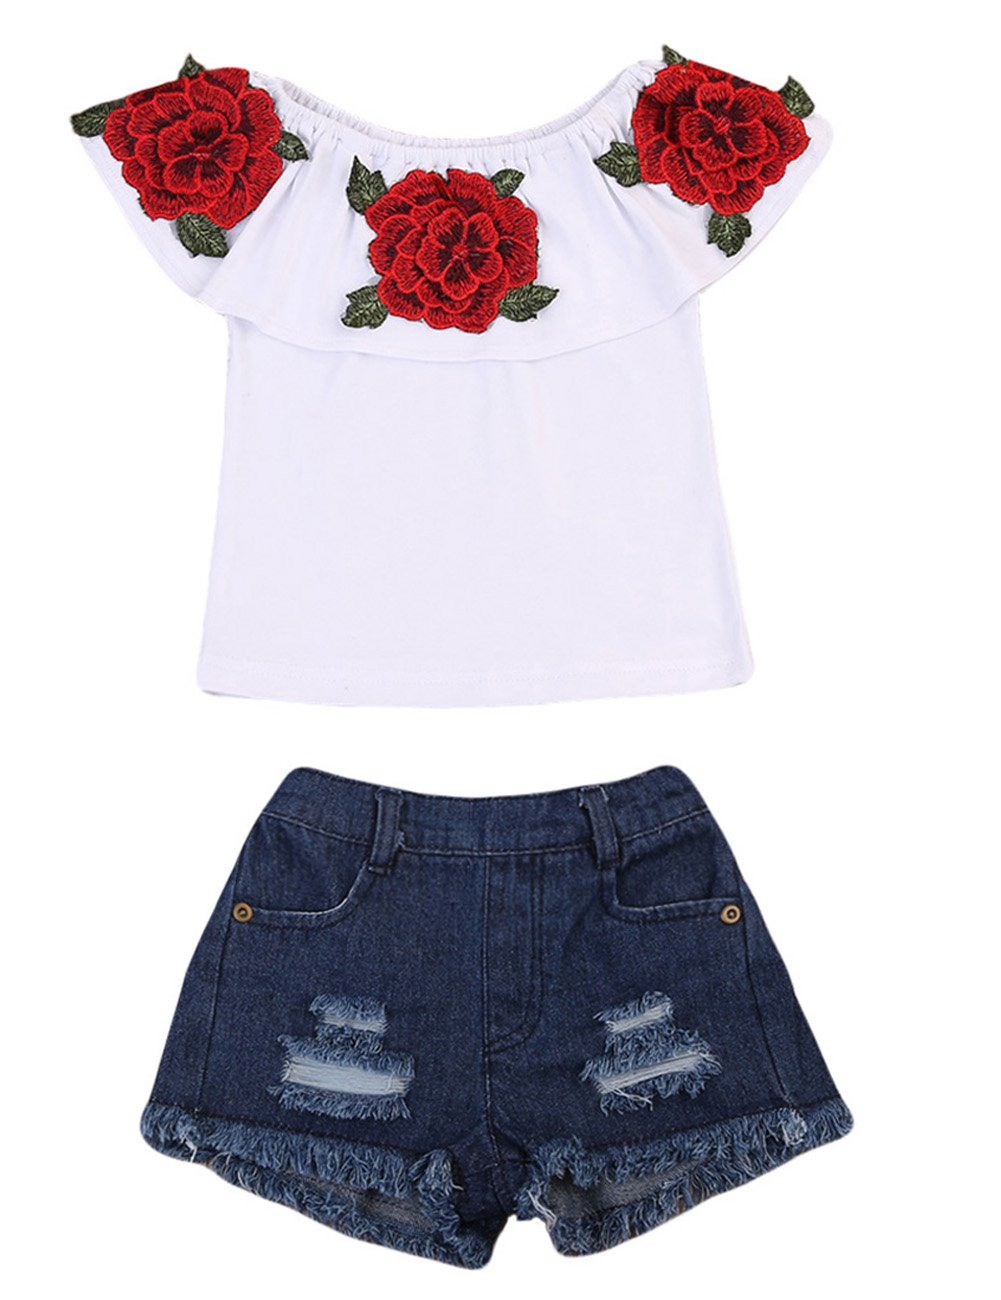 Little Girls Off-Shoulder Rose Embrodidery Applique Ruffle Top and Denim Shorts Outfit (5-6T, White)